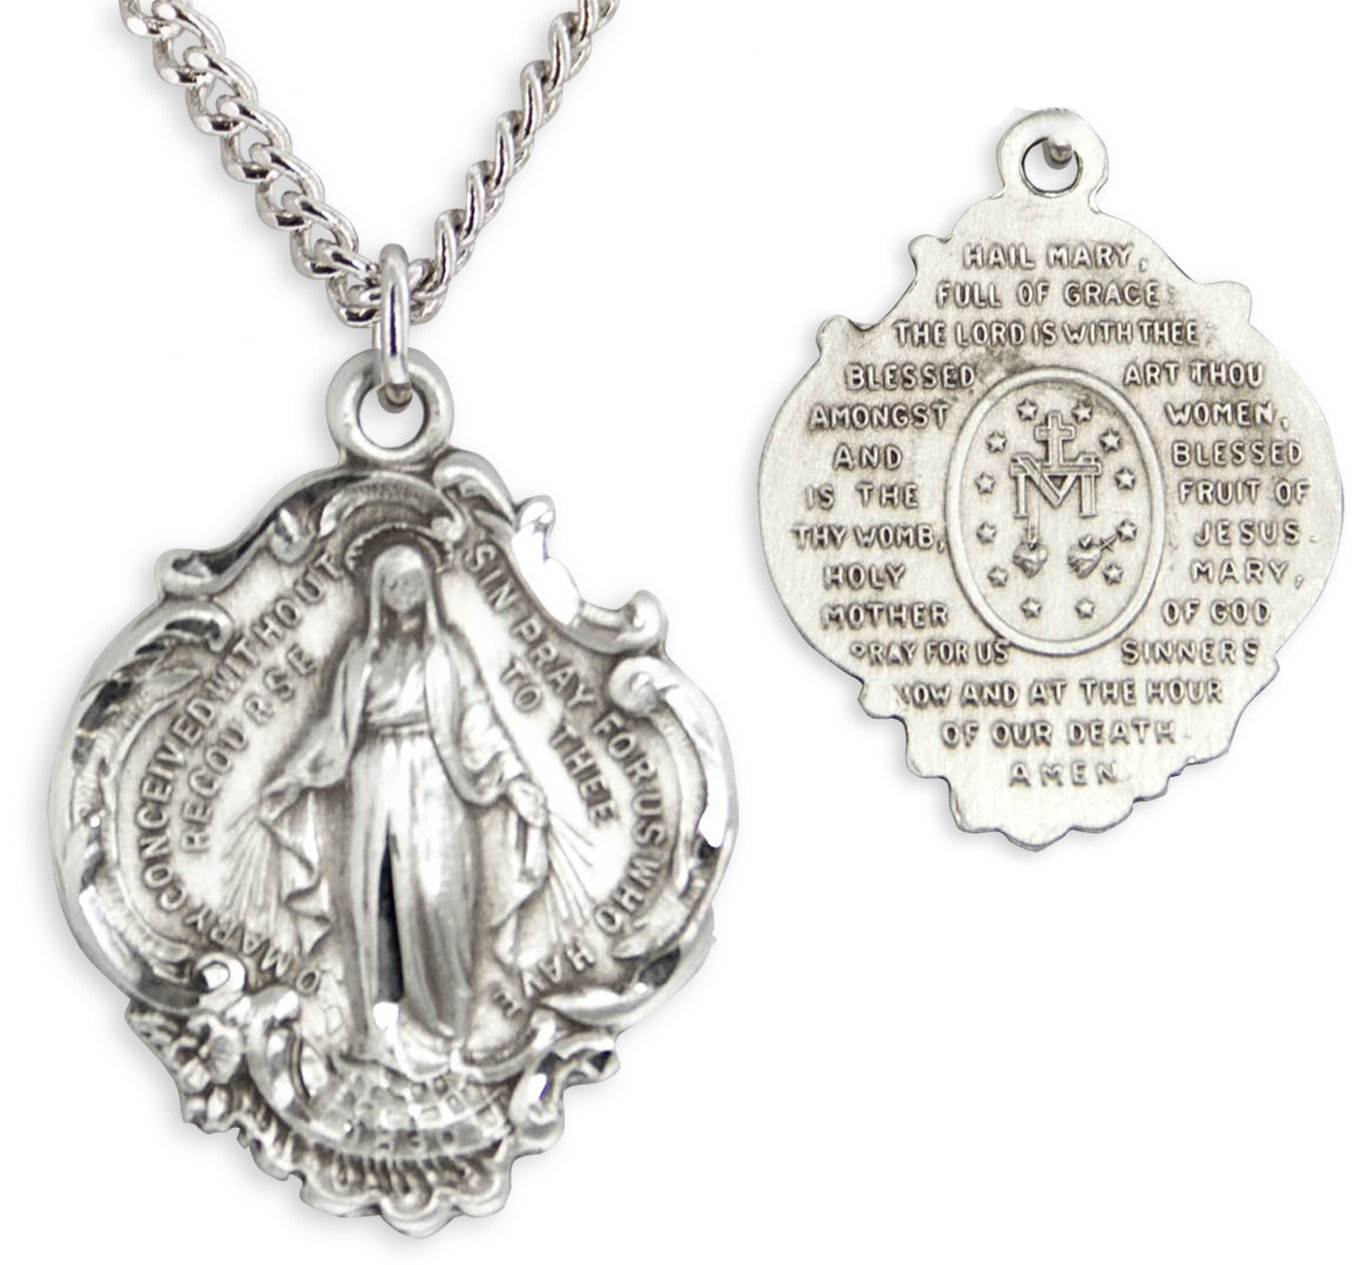 Hail Mary Prayer Sterling Silver Pendant + 24 Inch Sterling Silver Chain with Clasp by Heartland Store (Image #3)